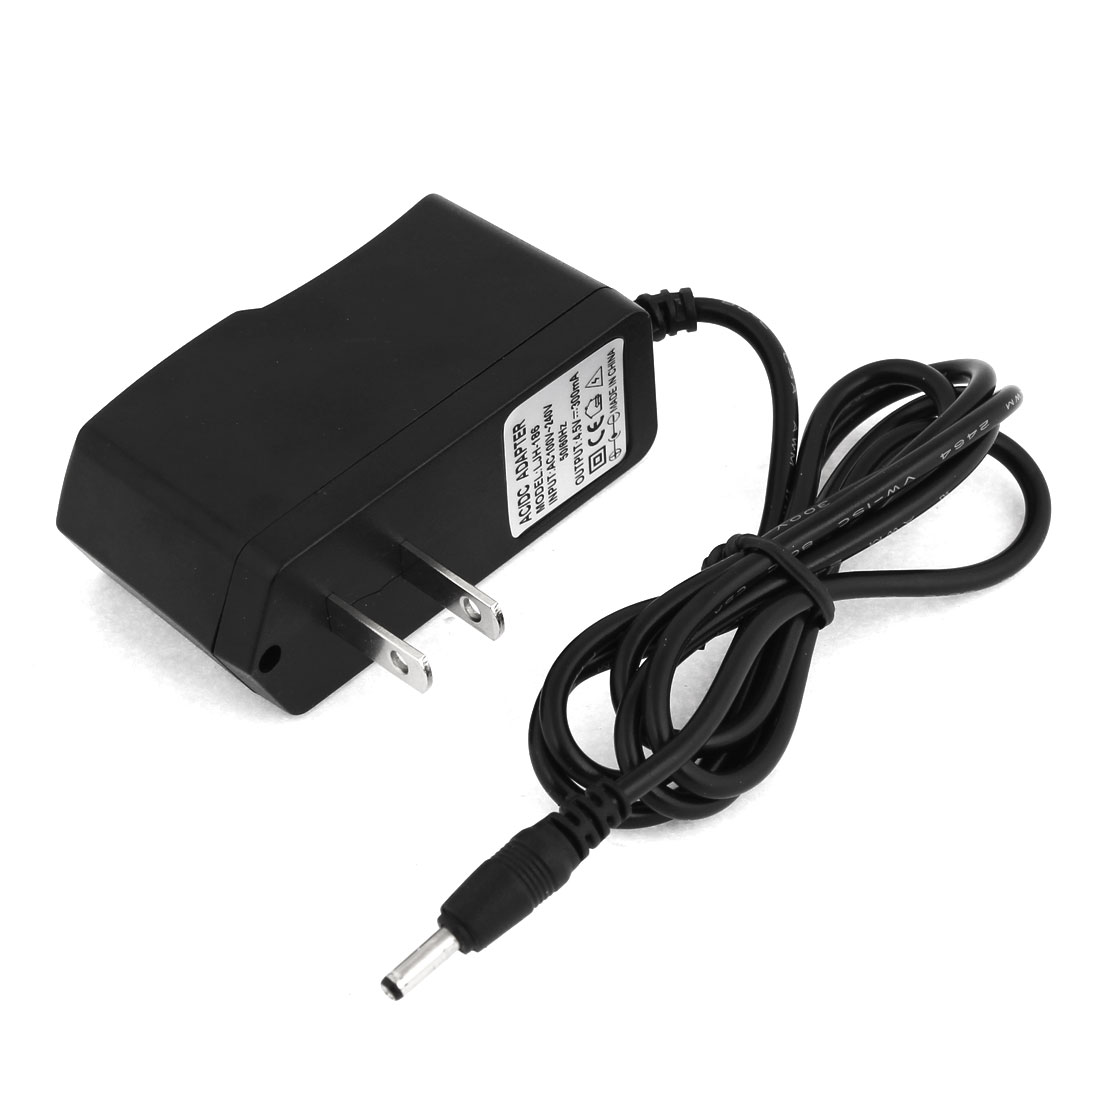 US Plug 100V-240V AC 4.5V 300mA DC Power Adapter for CCTV Security Camera